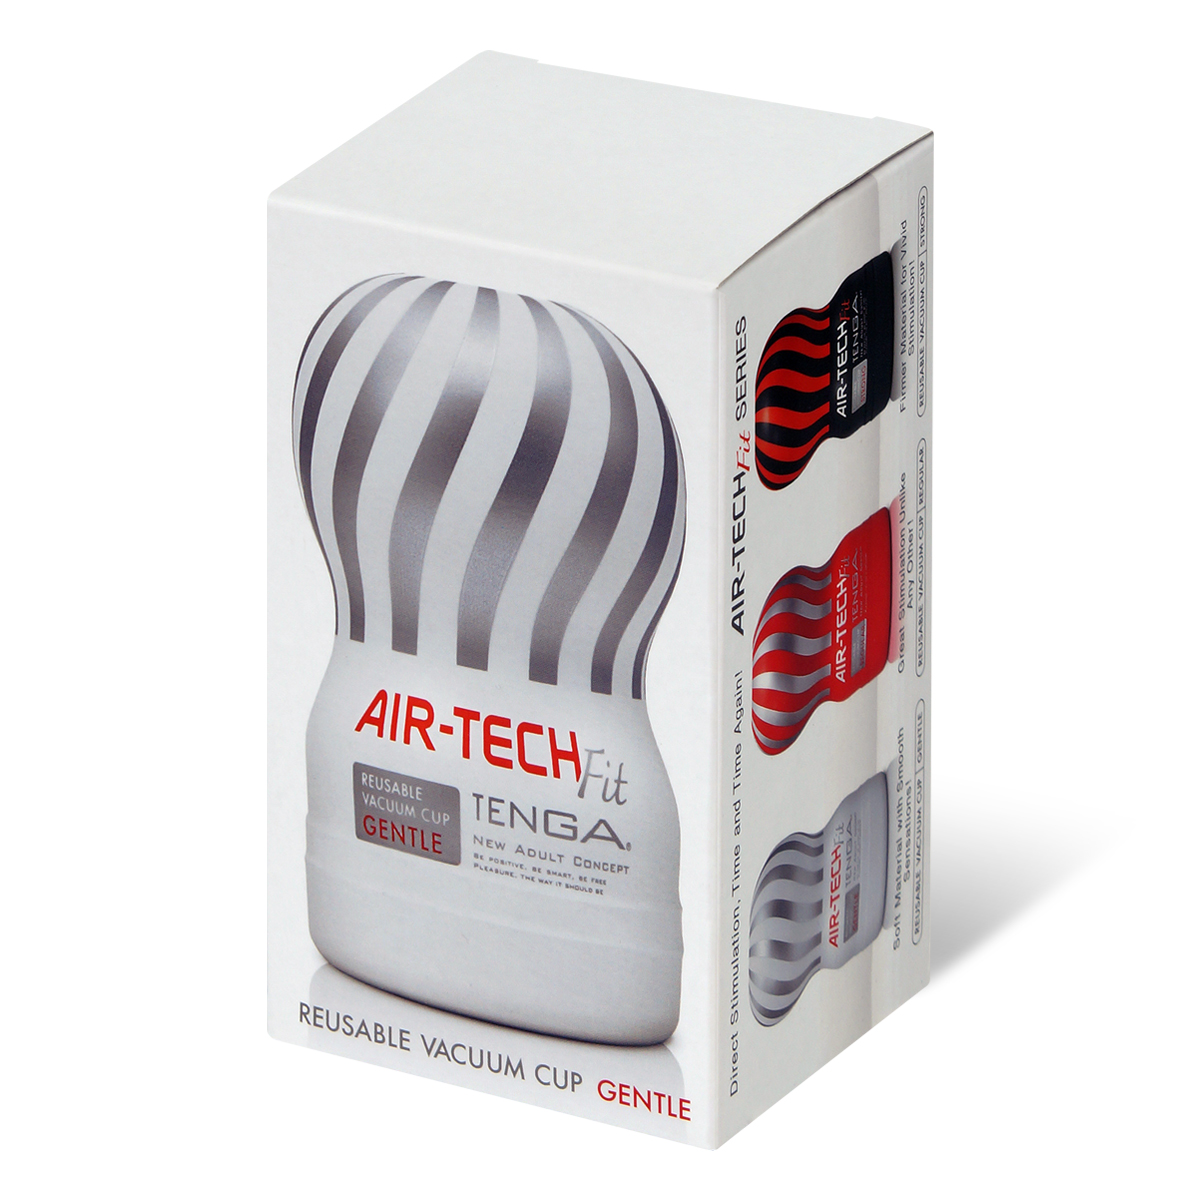 TENGA AIR-TECH Fit Reusable Vacuum CUP GENTLE